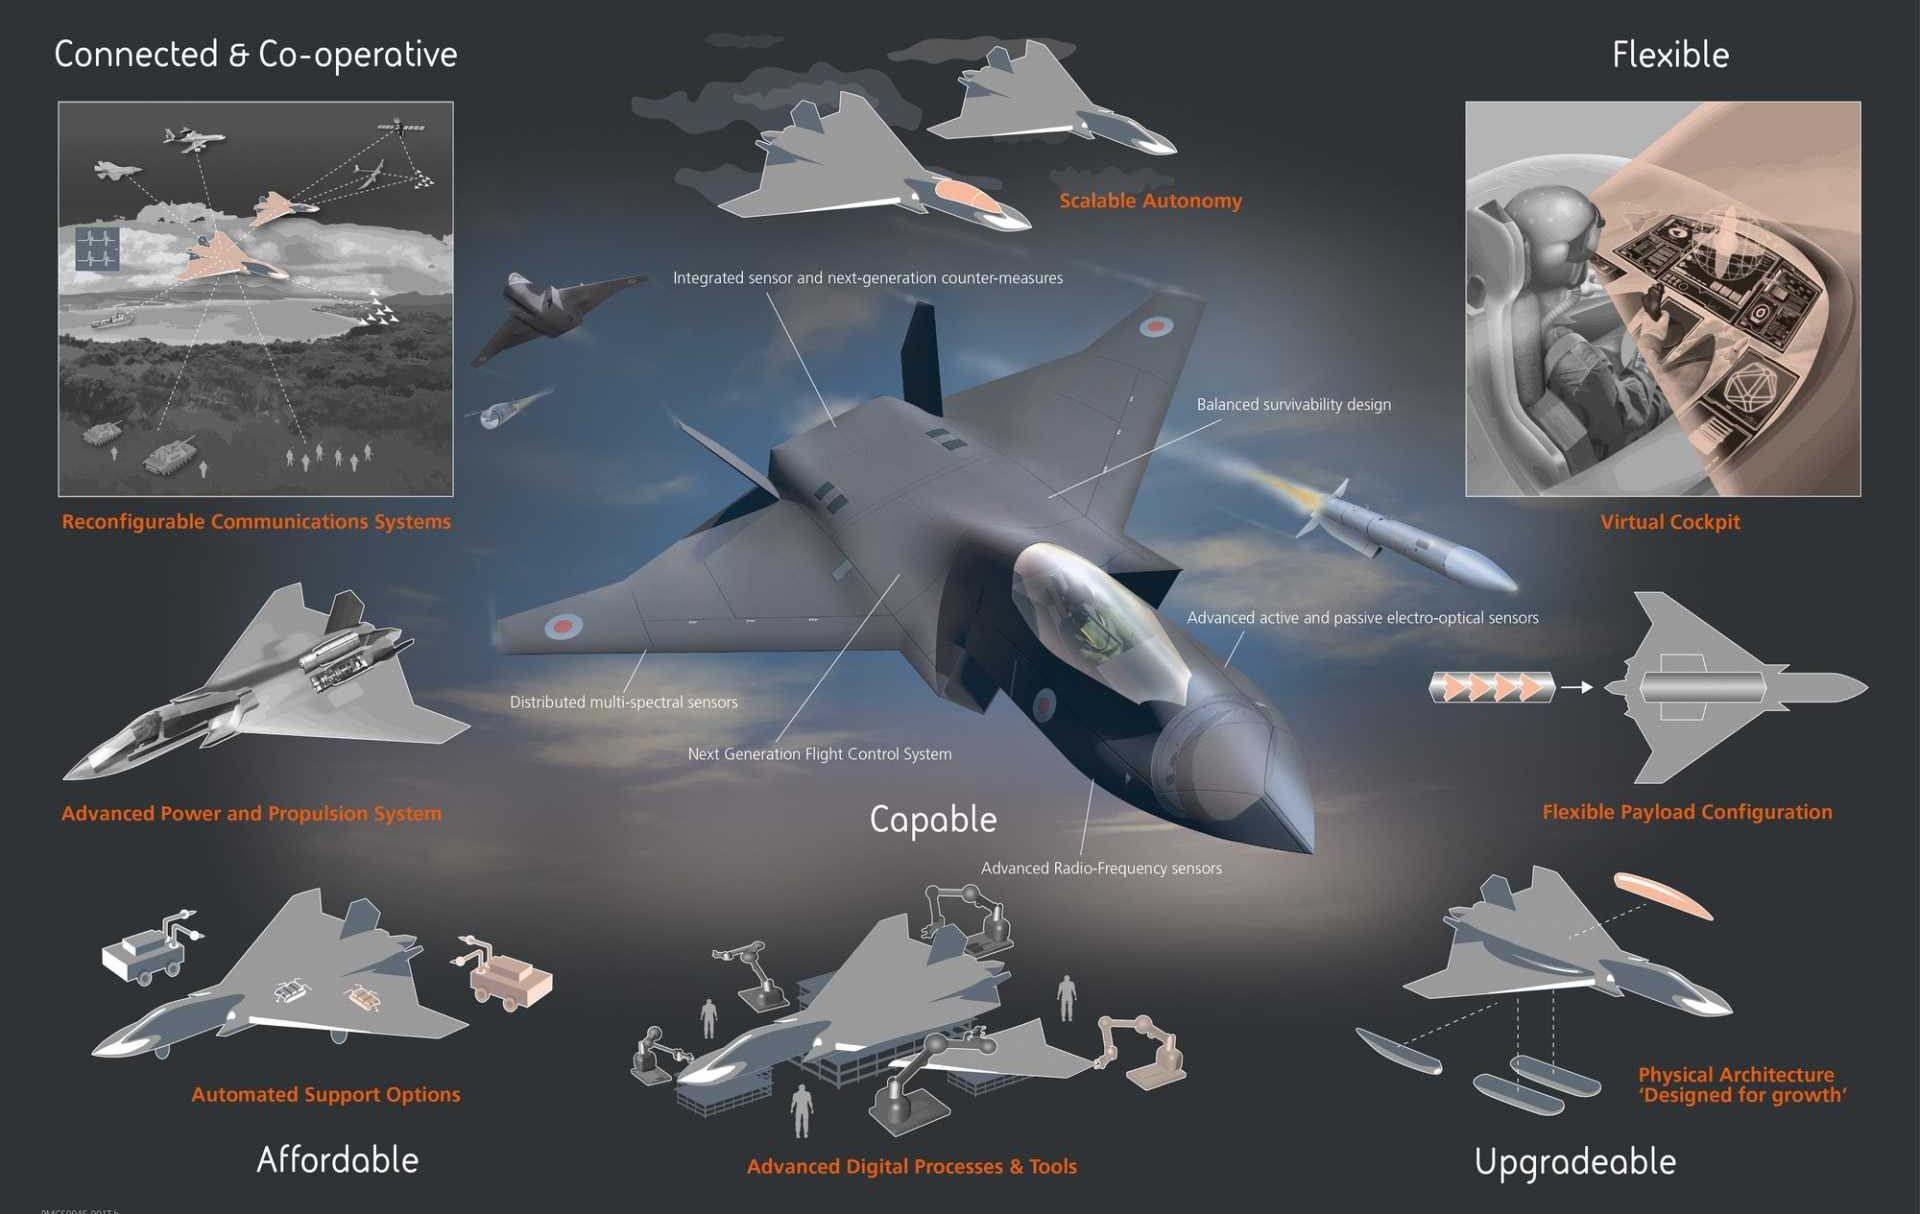 Team Tempest future combat air system concept - infographic courtesy of BAE Systems.